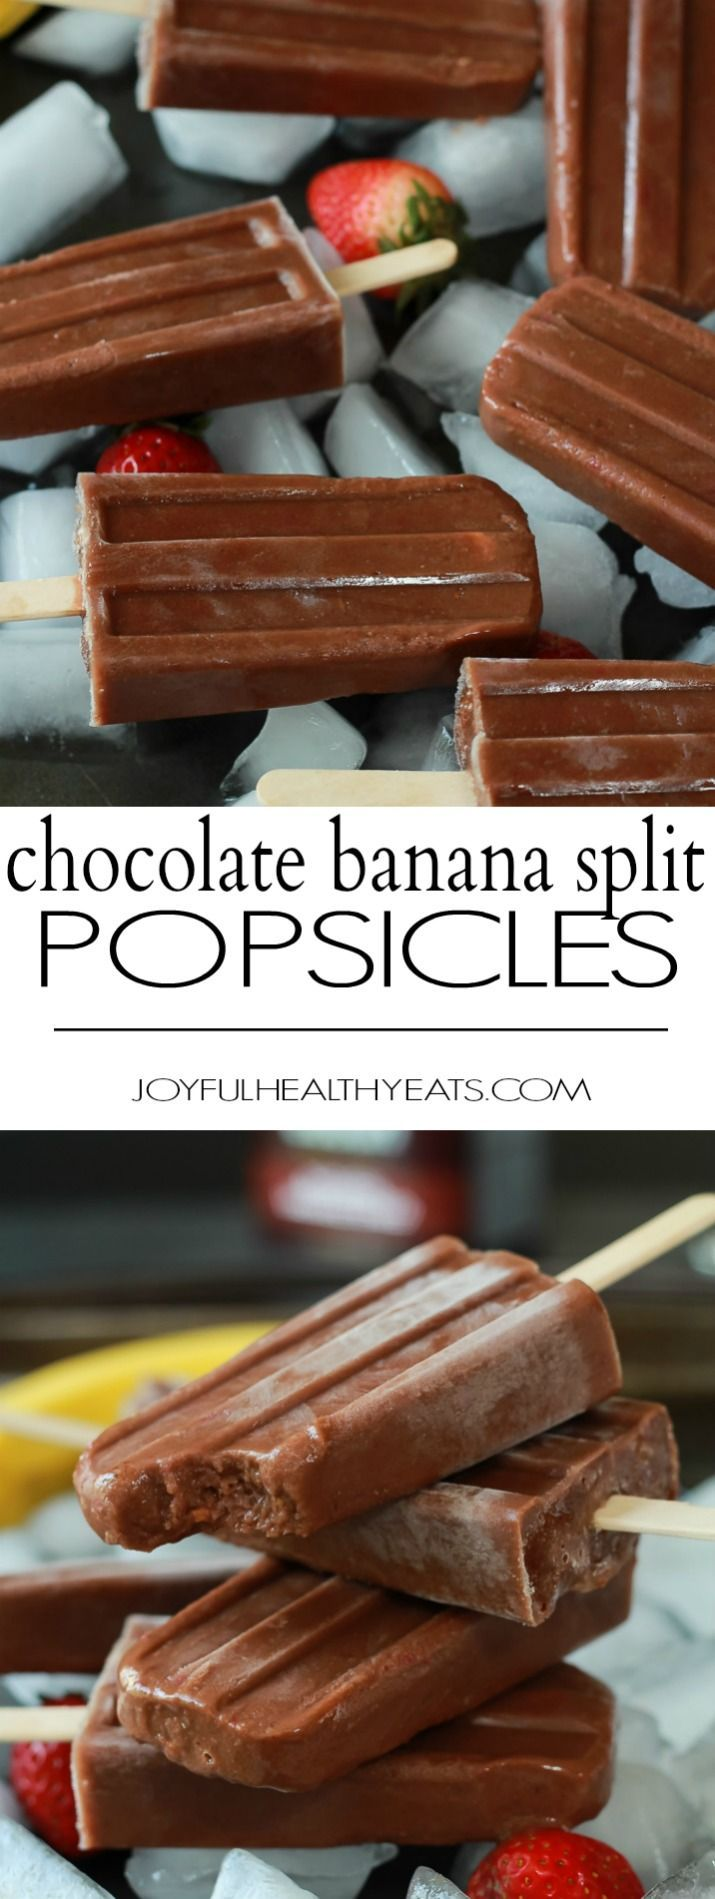 Healthy sugar free and dairy free Chocolate Banana Split Popsicles made with only 5 ingredients! A perfect dessert treat to cool you down this summer! | joyfulhealthyeats... #glutenfree #cleaneating #sugarfree